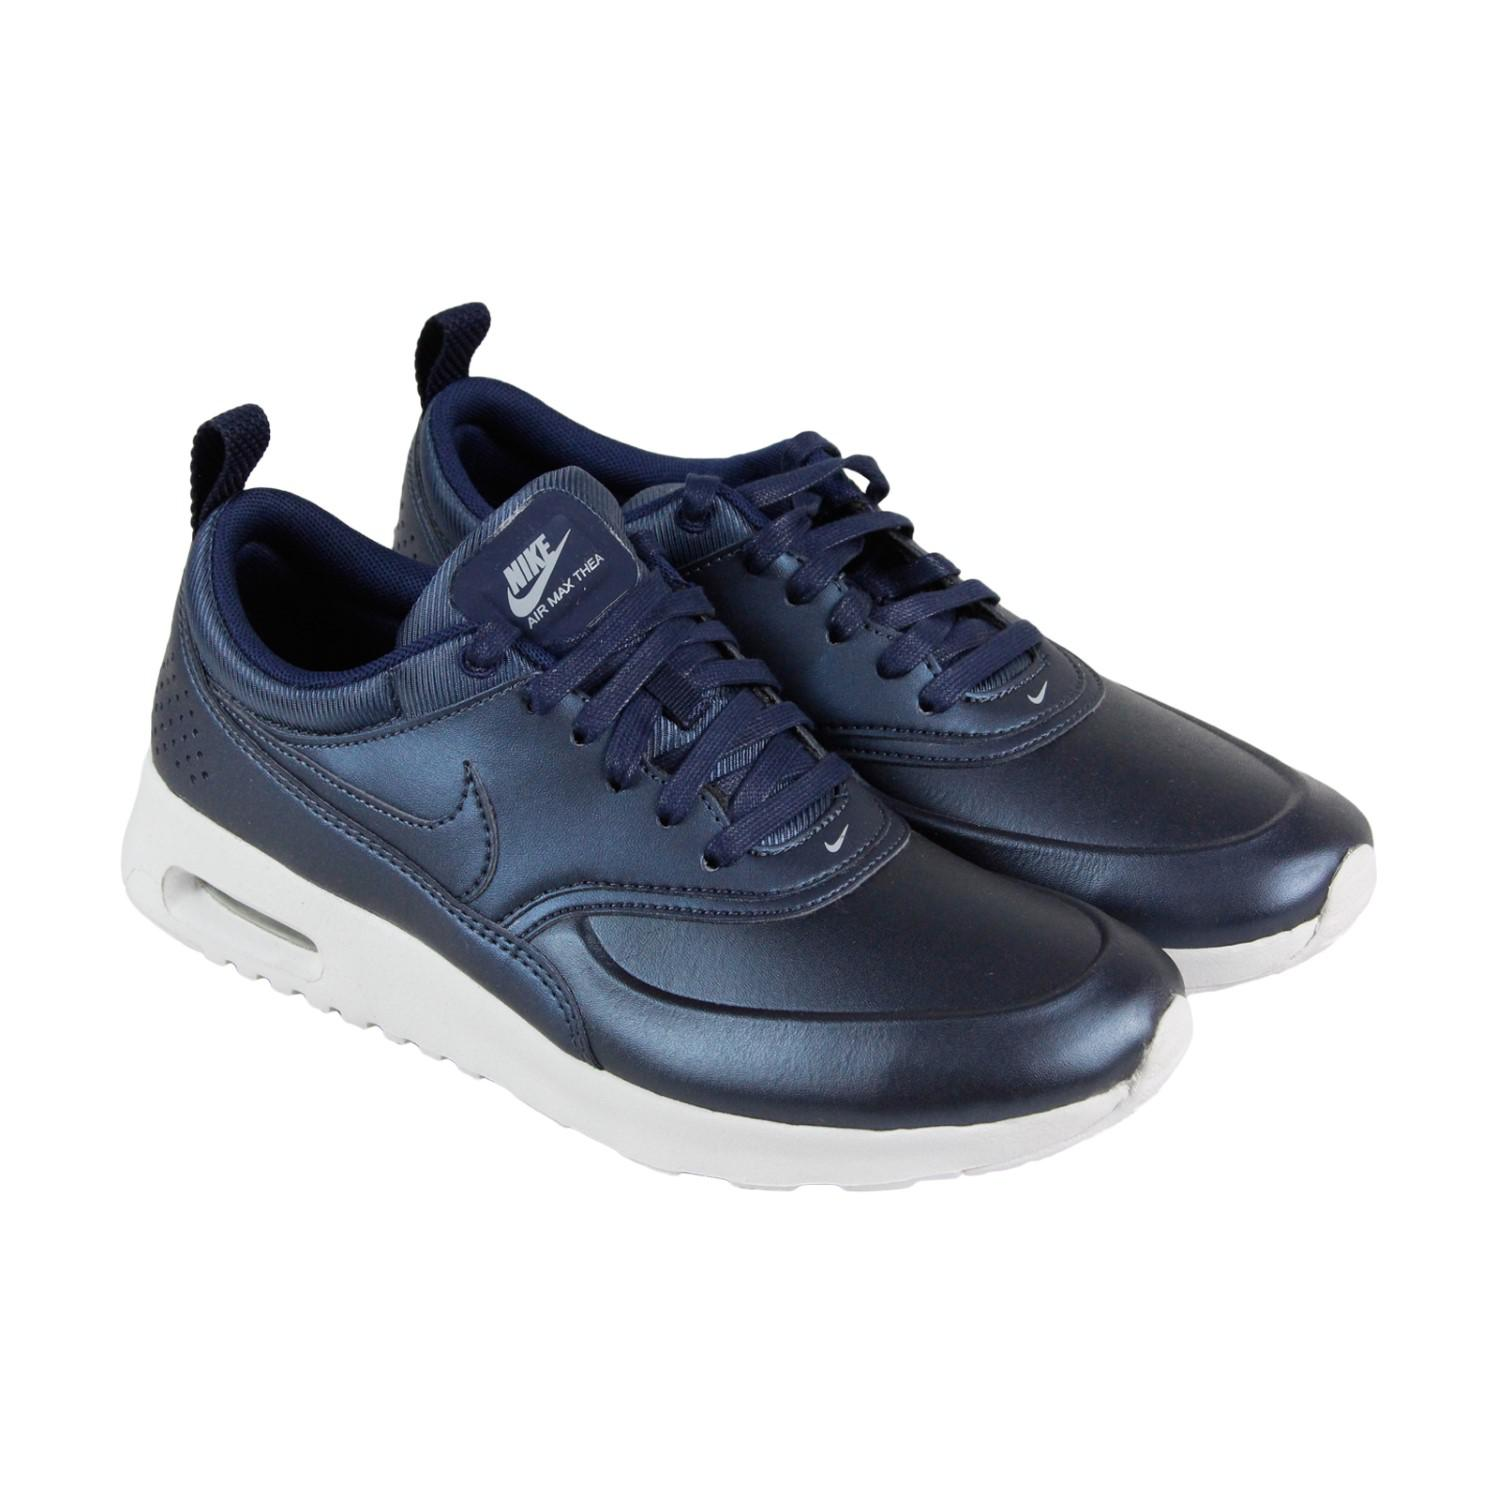 5e6ed67f39 Nike Air Max Thea Se Metallic Armory Navy Womens Athletic Running ...